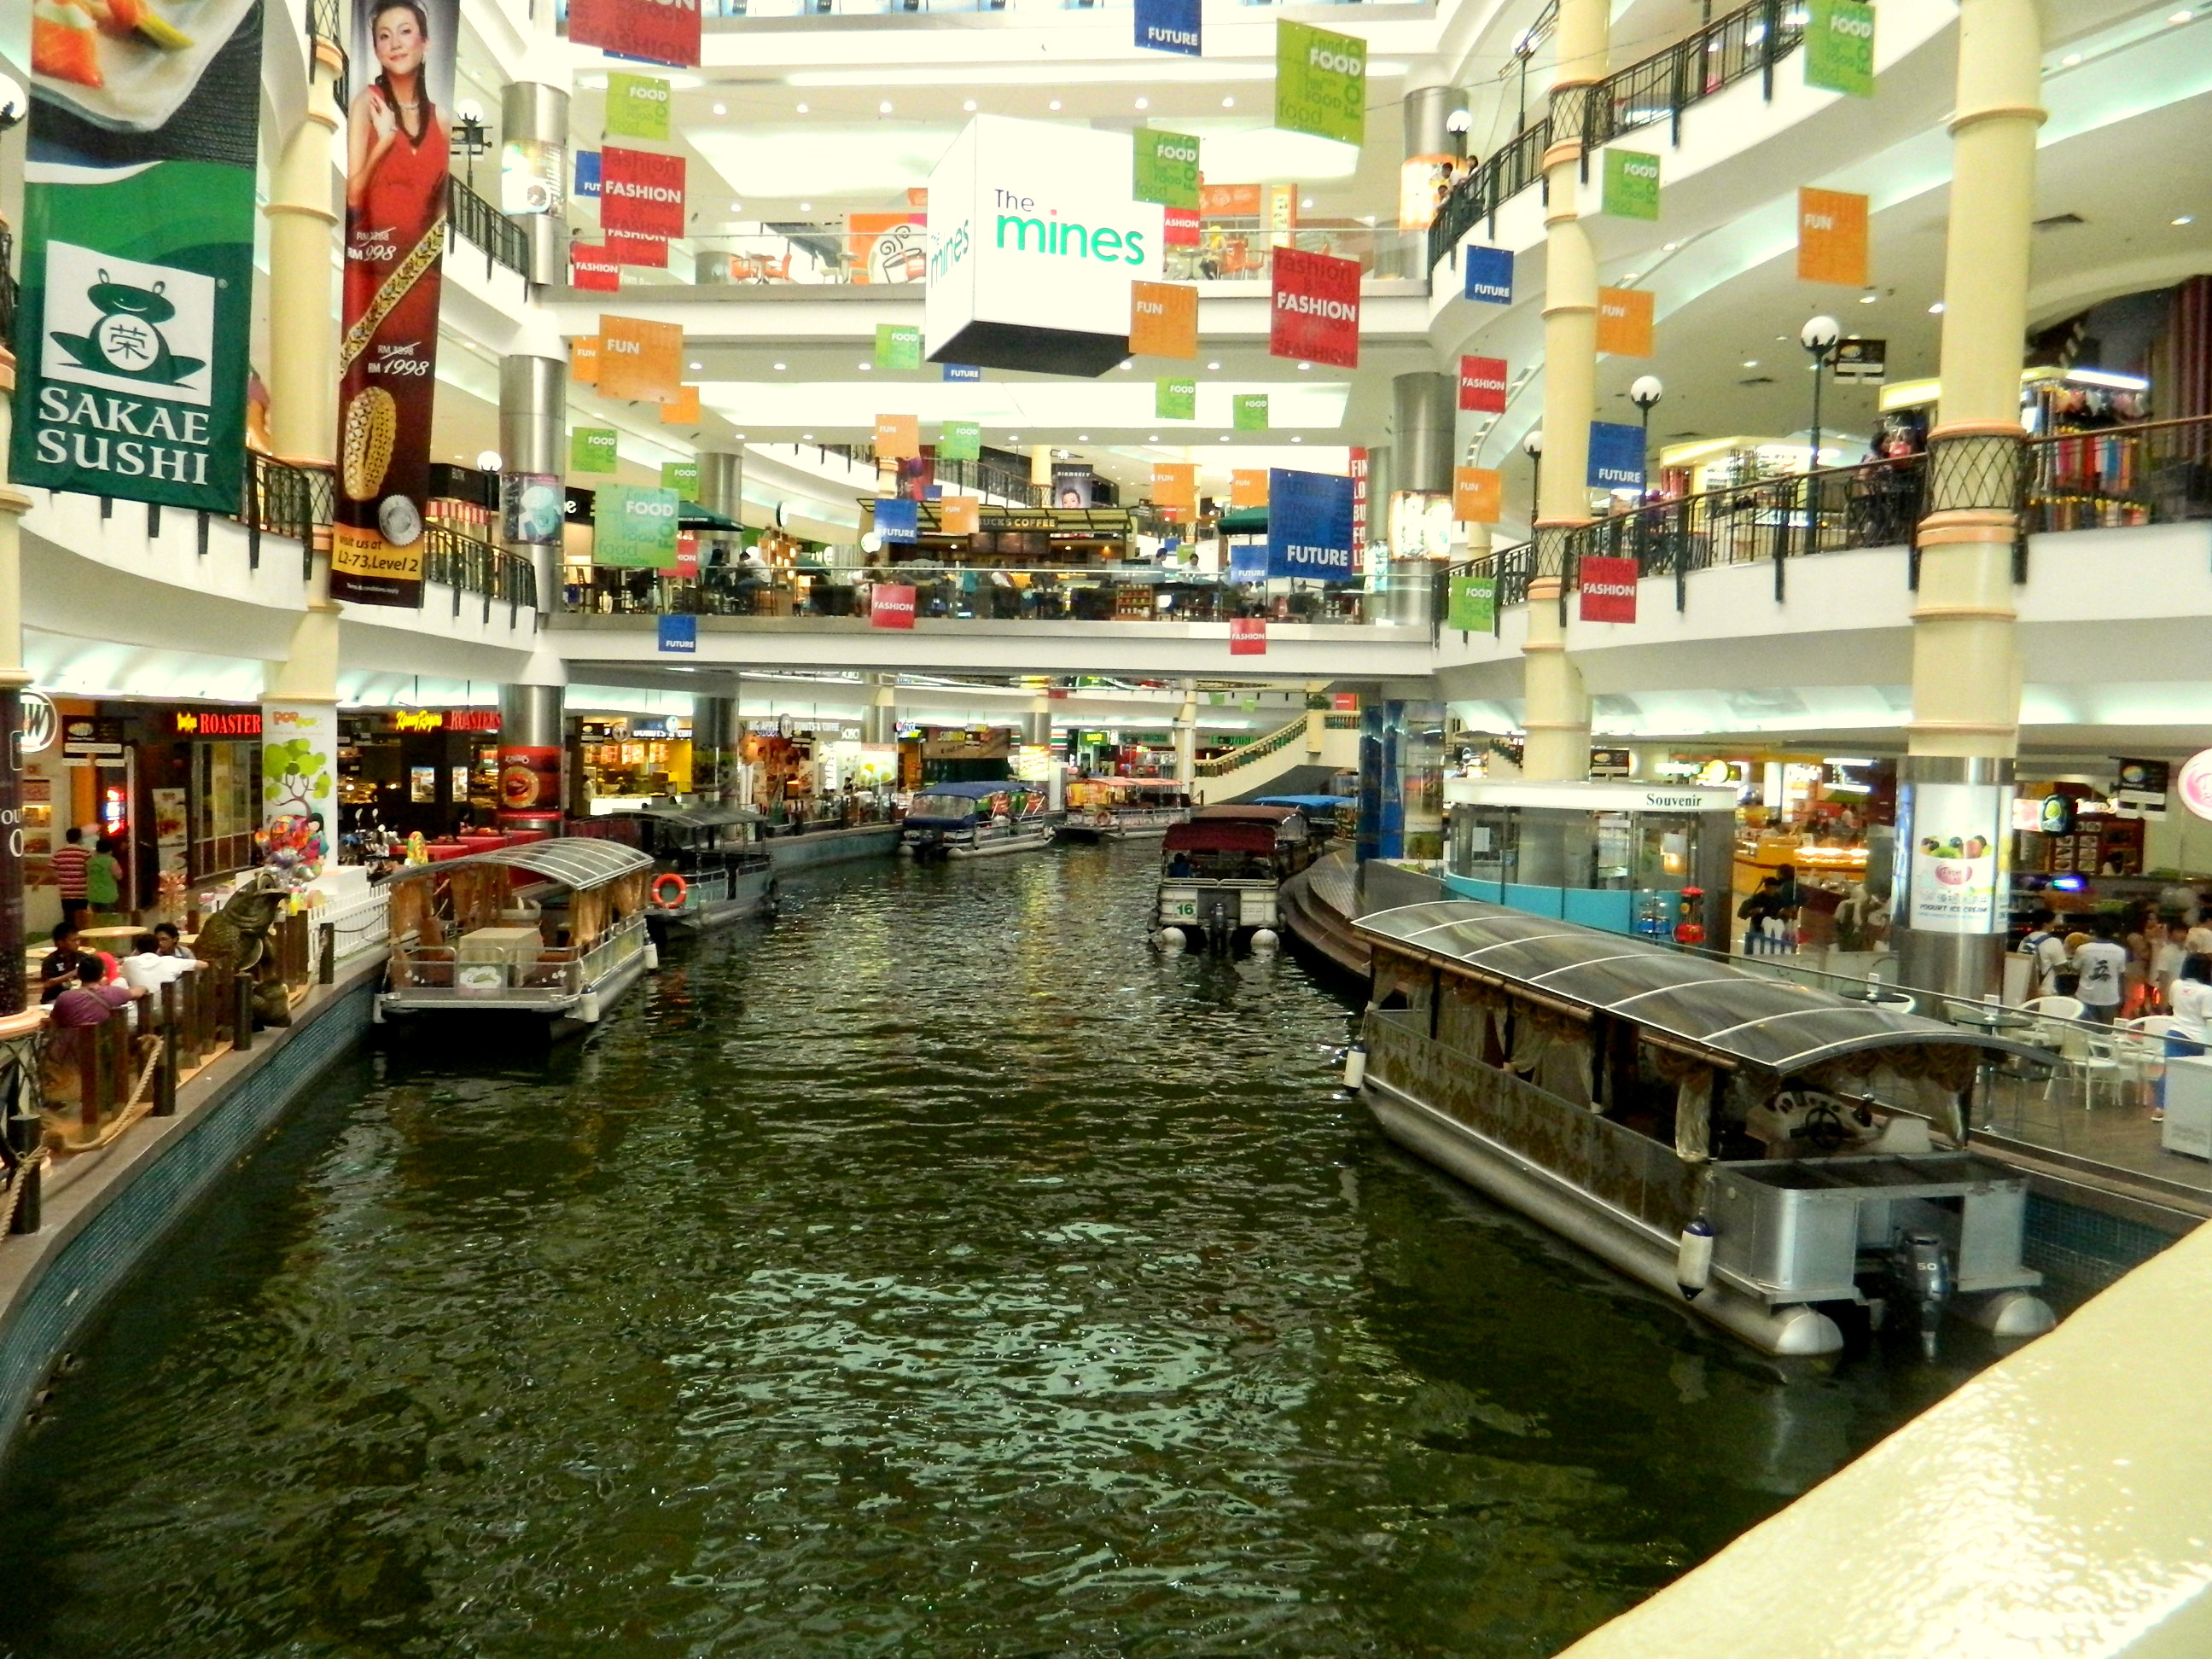 Image result for the mines shopping mall